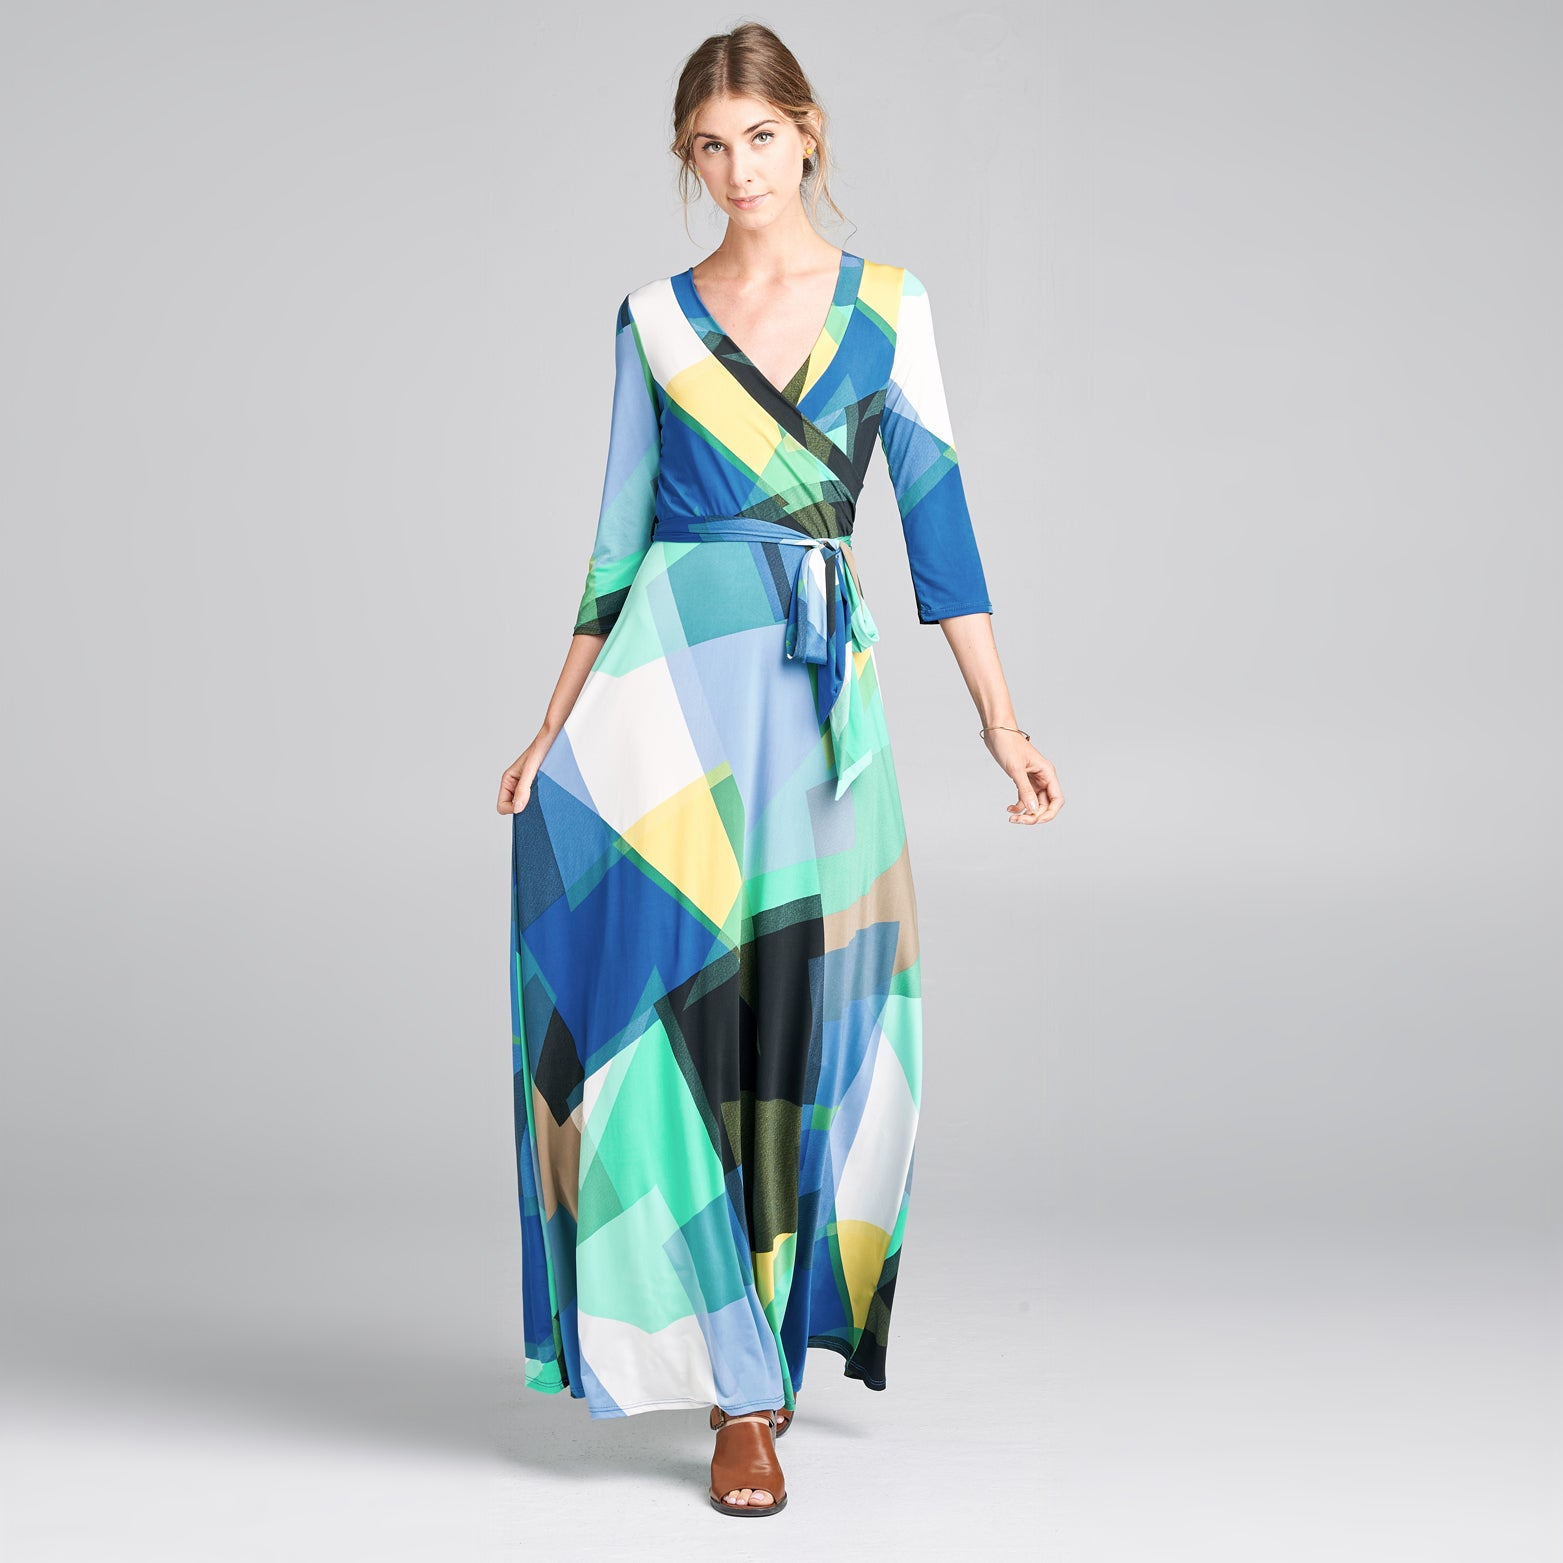 Teal Abstract Wrap Dress